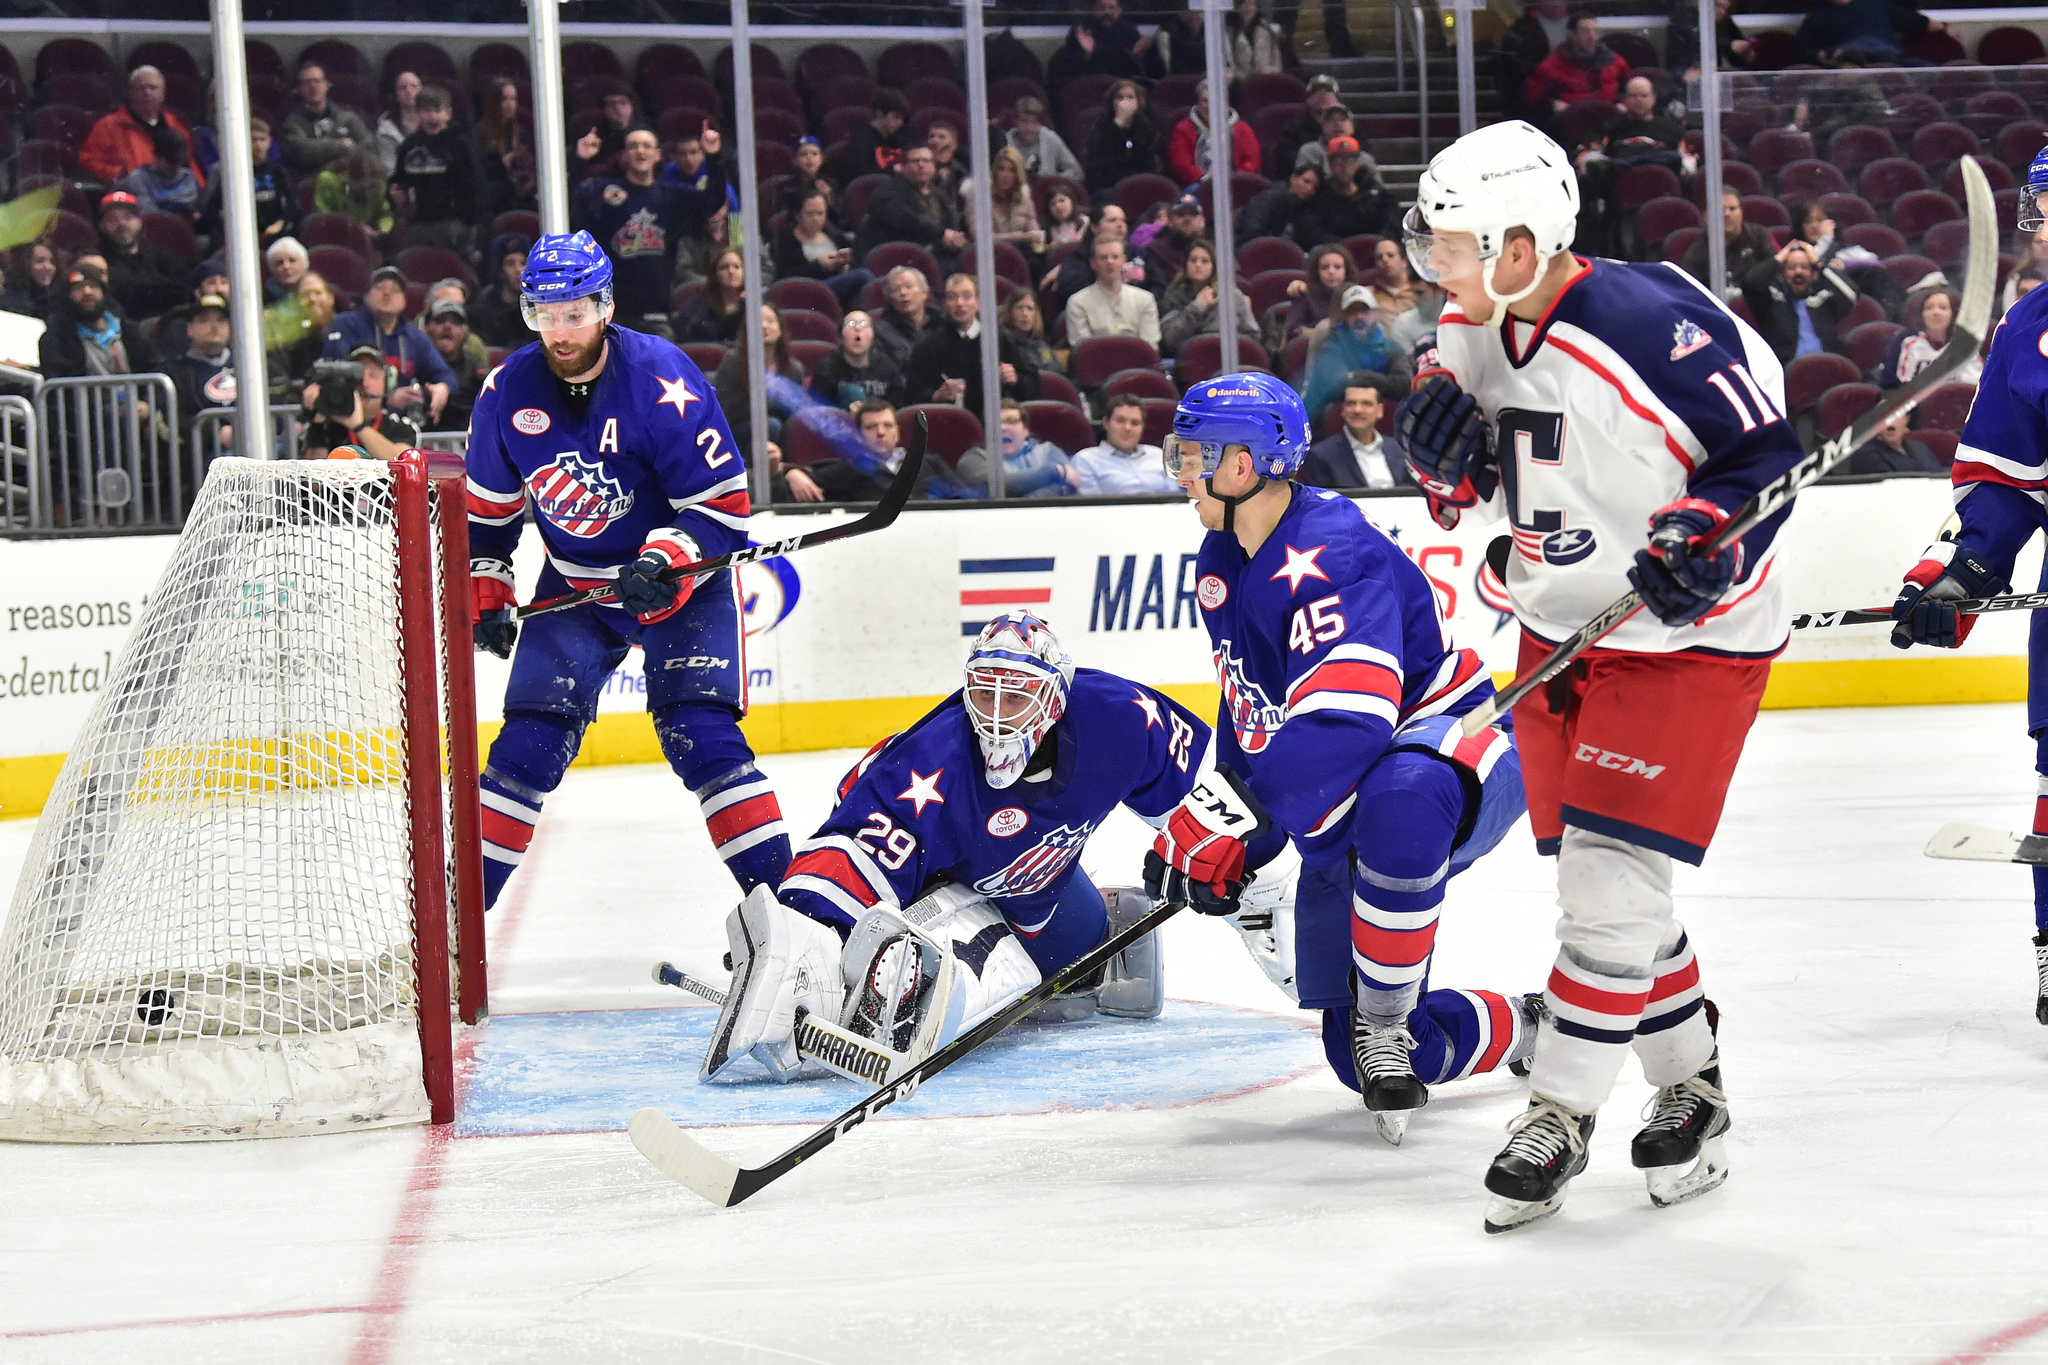 Amerks Give Up 5 for the Second Straight Game